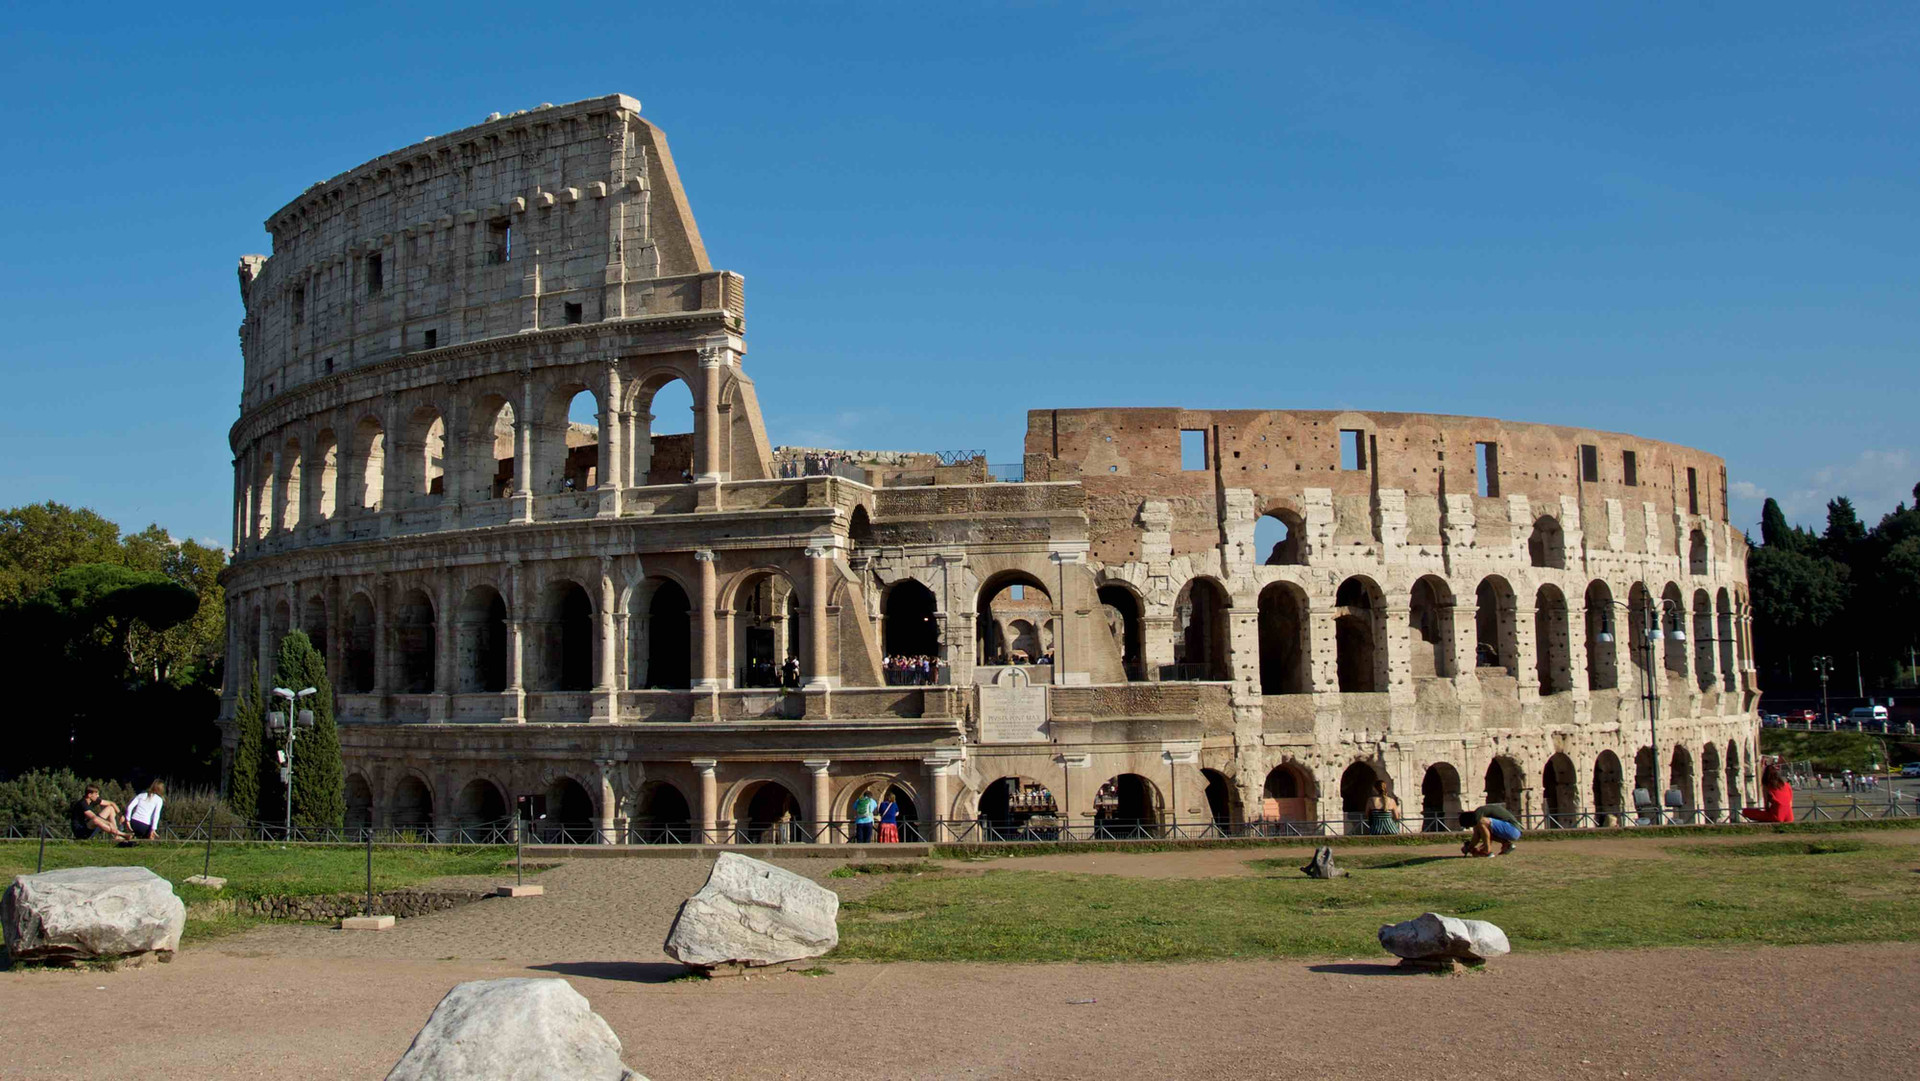 The Colosseum from Palatine hill